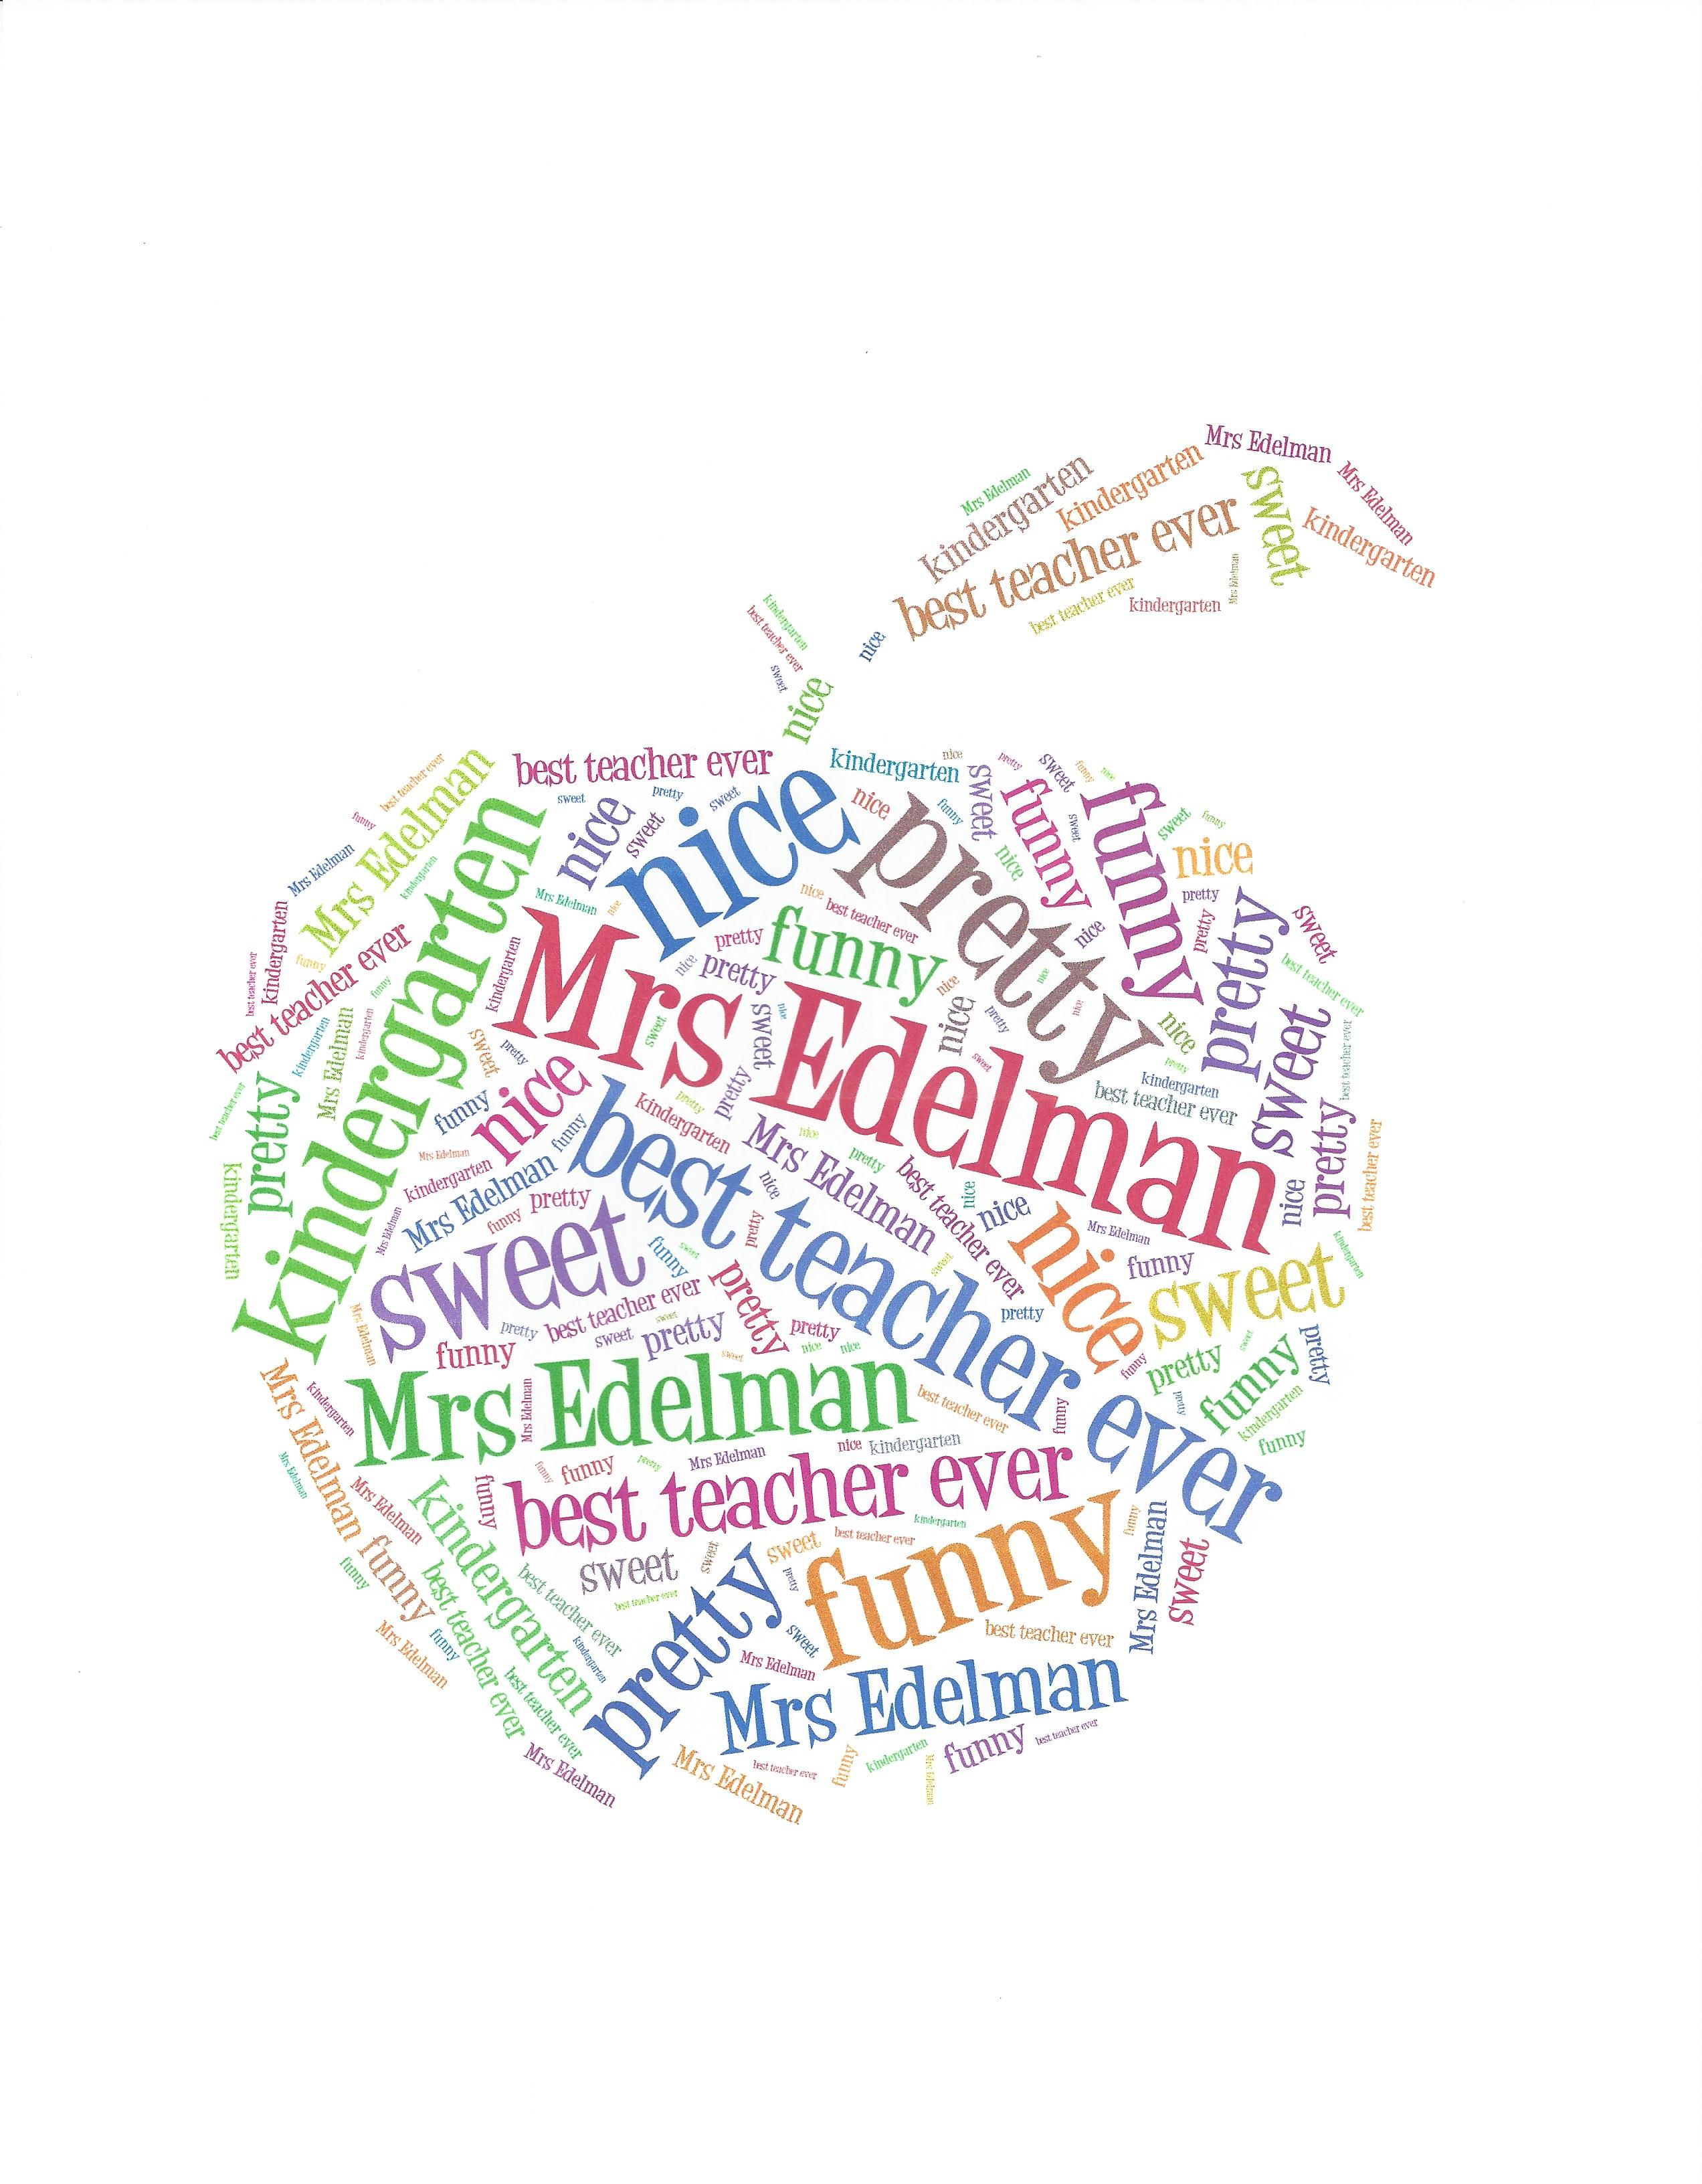 Our teachers loved this personalized mouse pad made on tagxedo our teachers loved this personalized mouse pad made on tagxedo publicscrutiny Choice Image